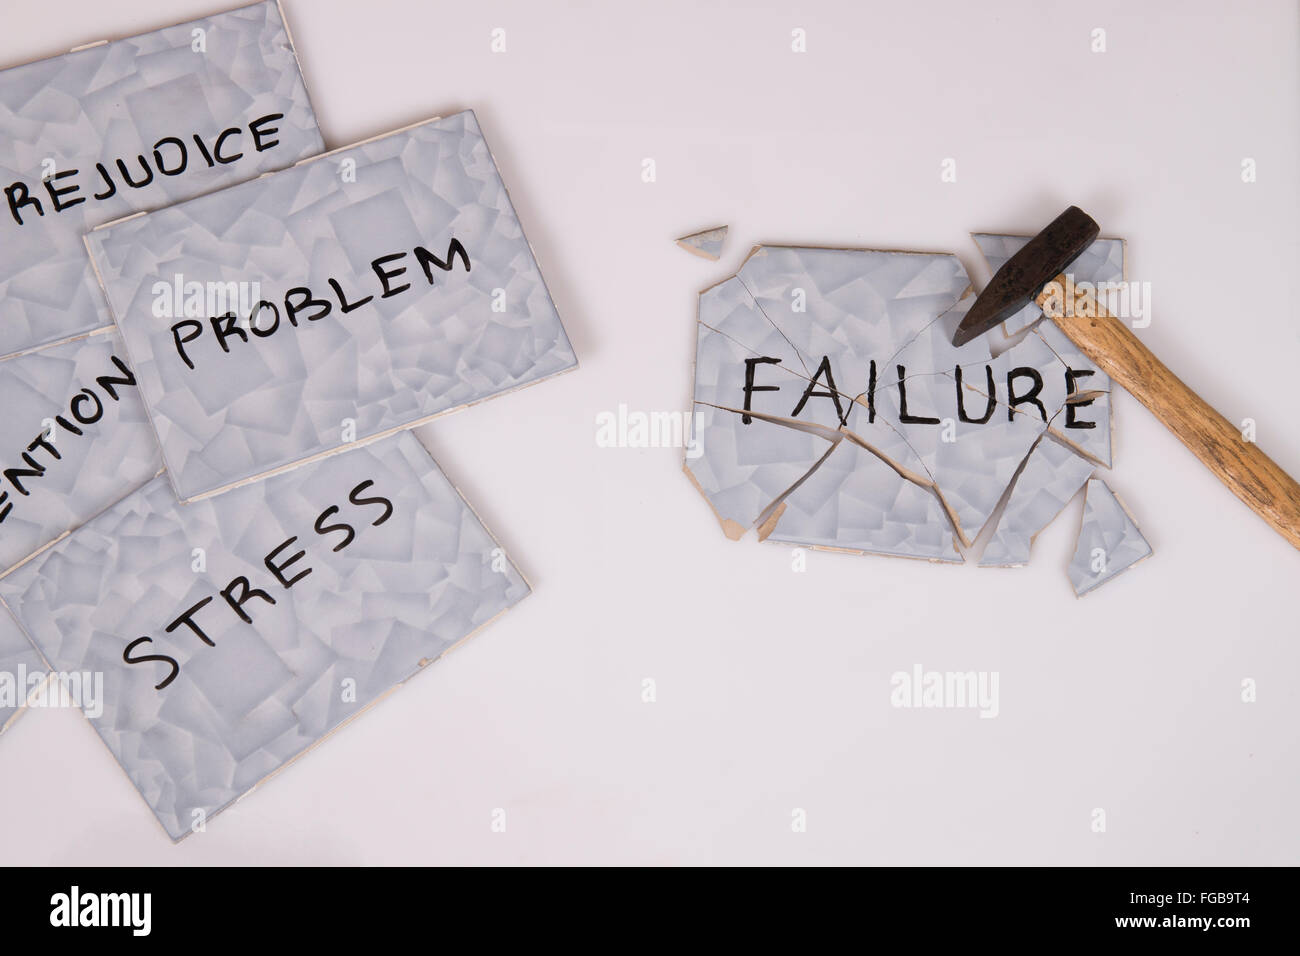 overcome failure and problems - Stock Image